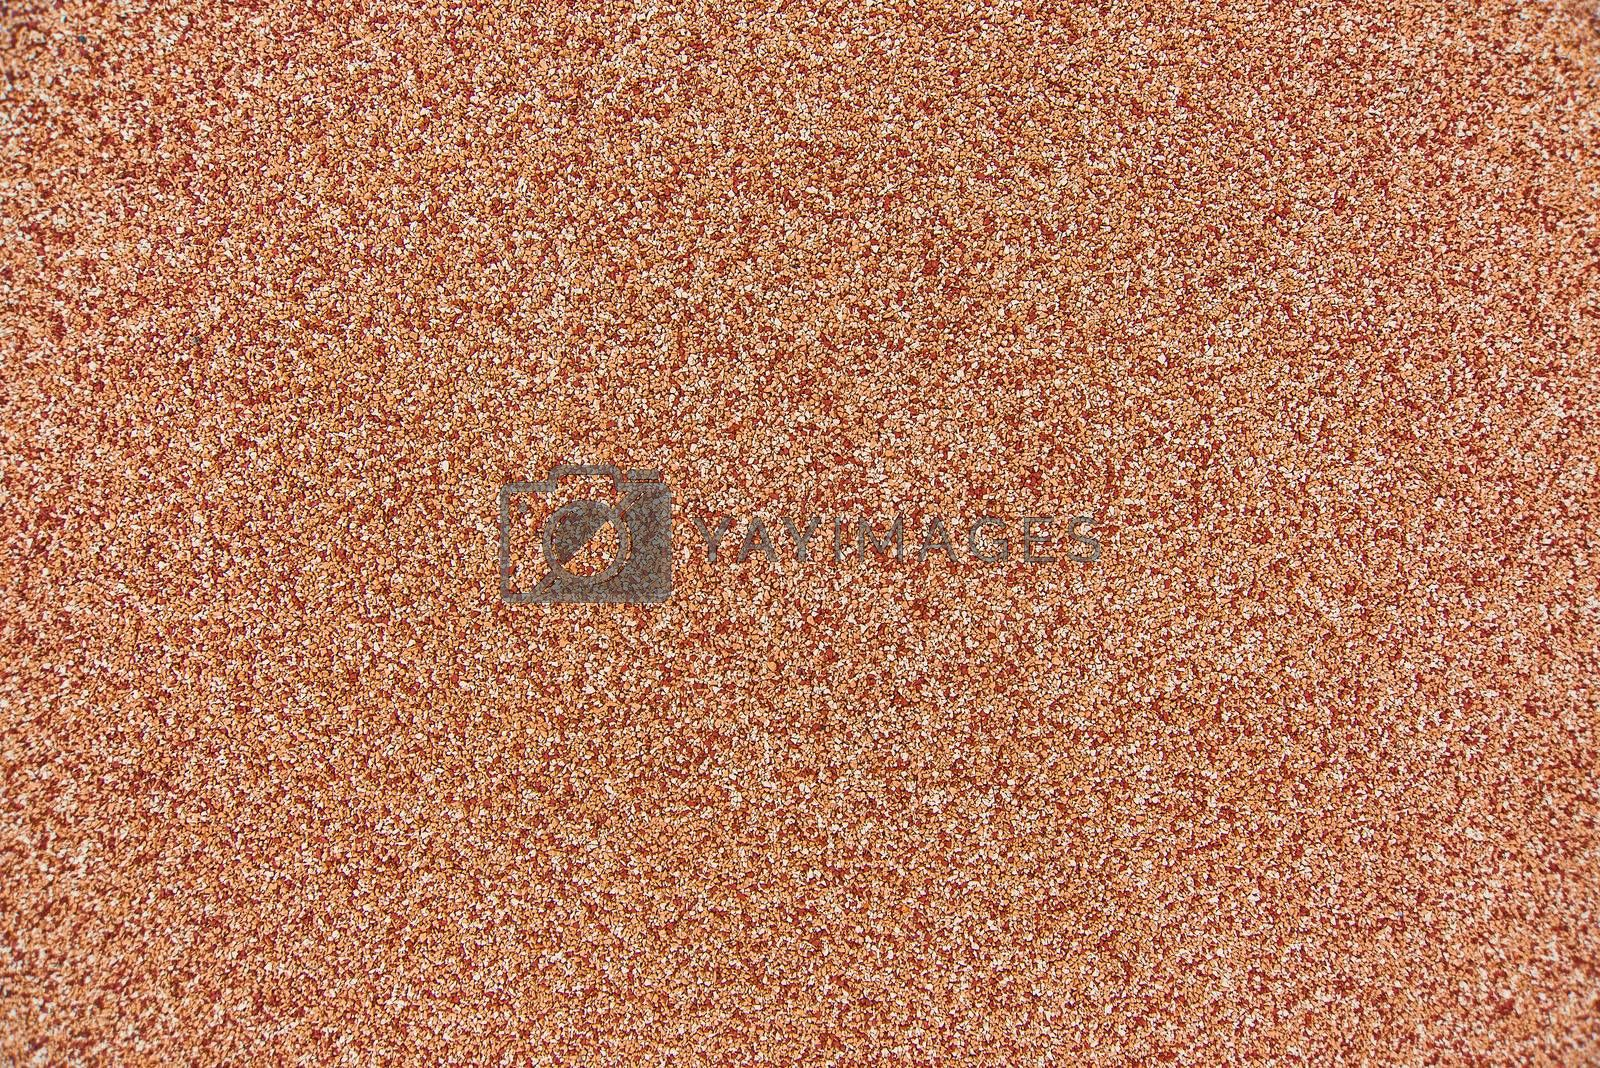 Red Tarmac Texture PAttern as Urban Background